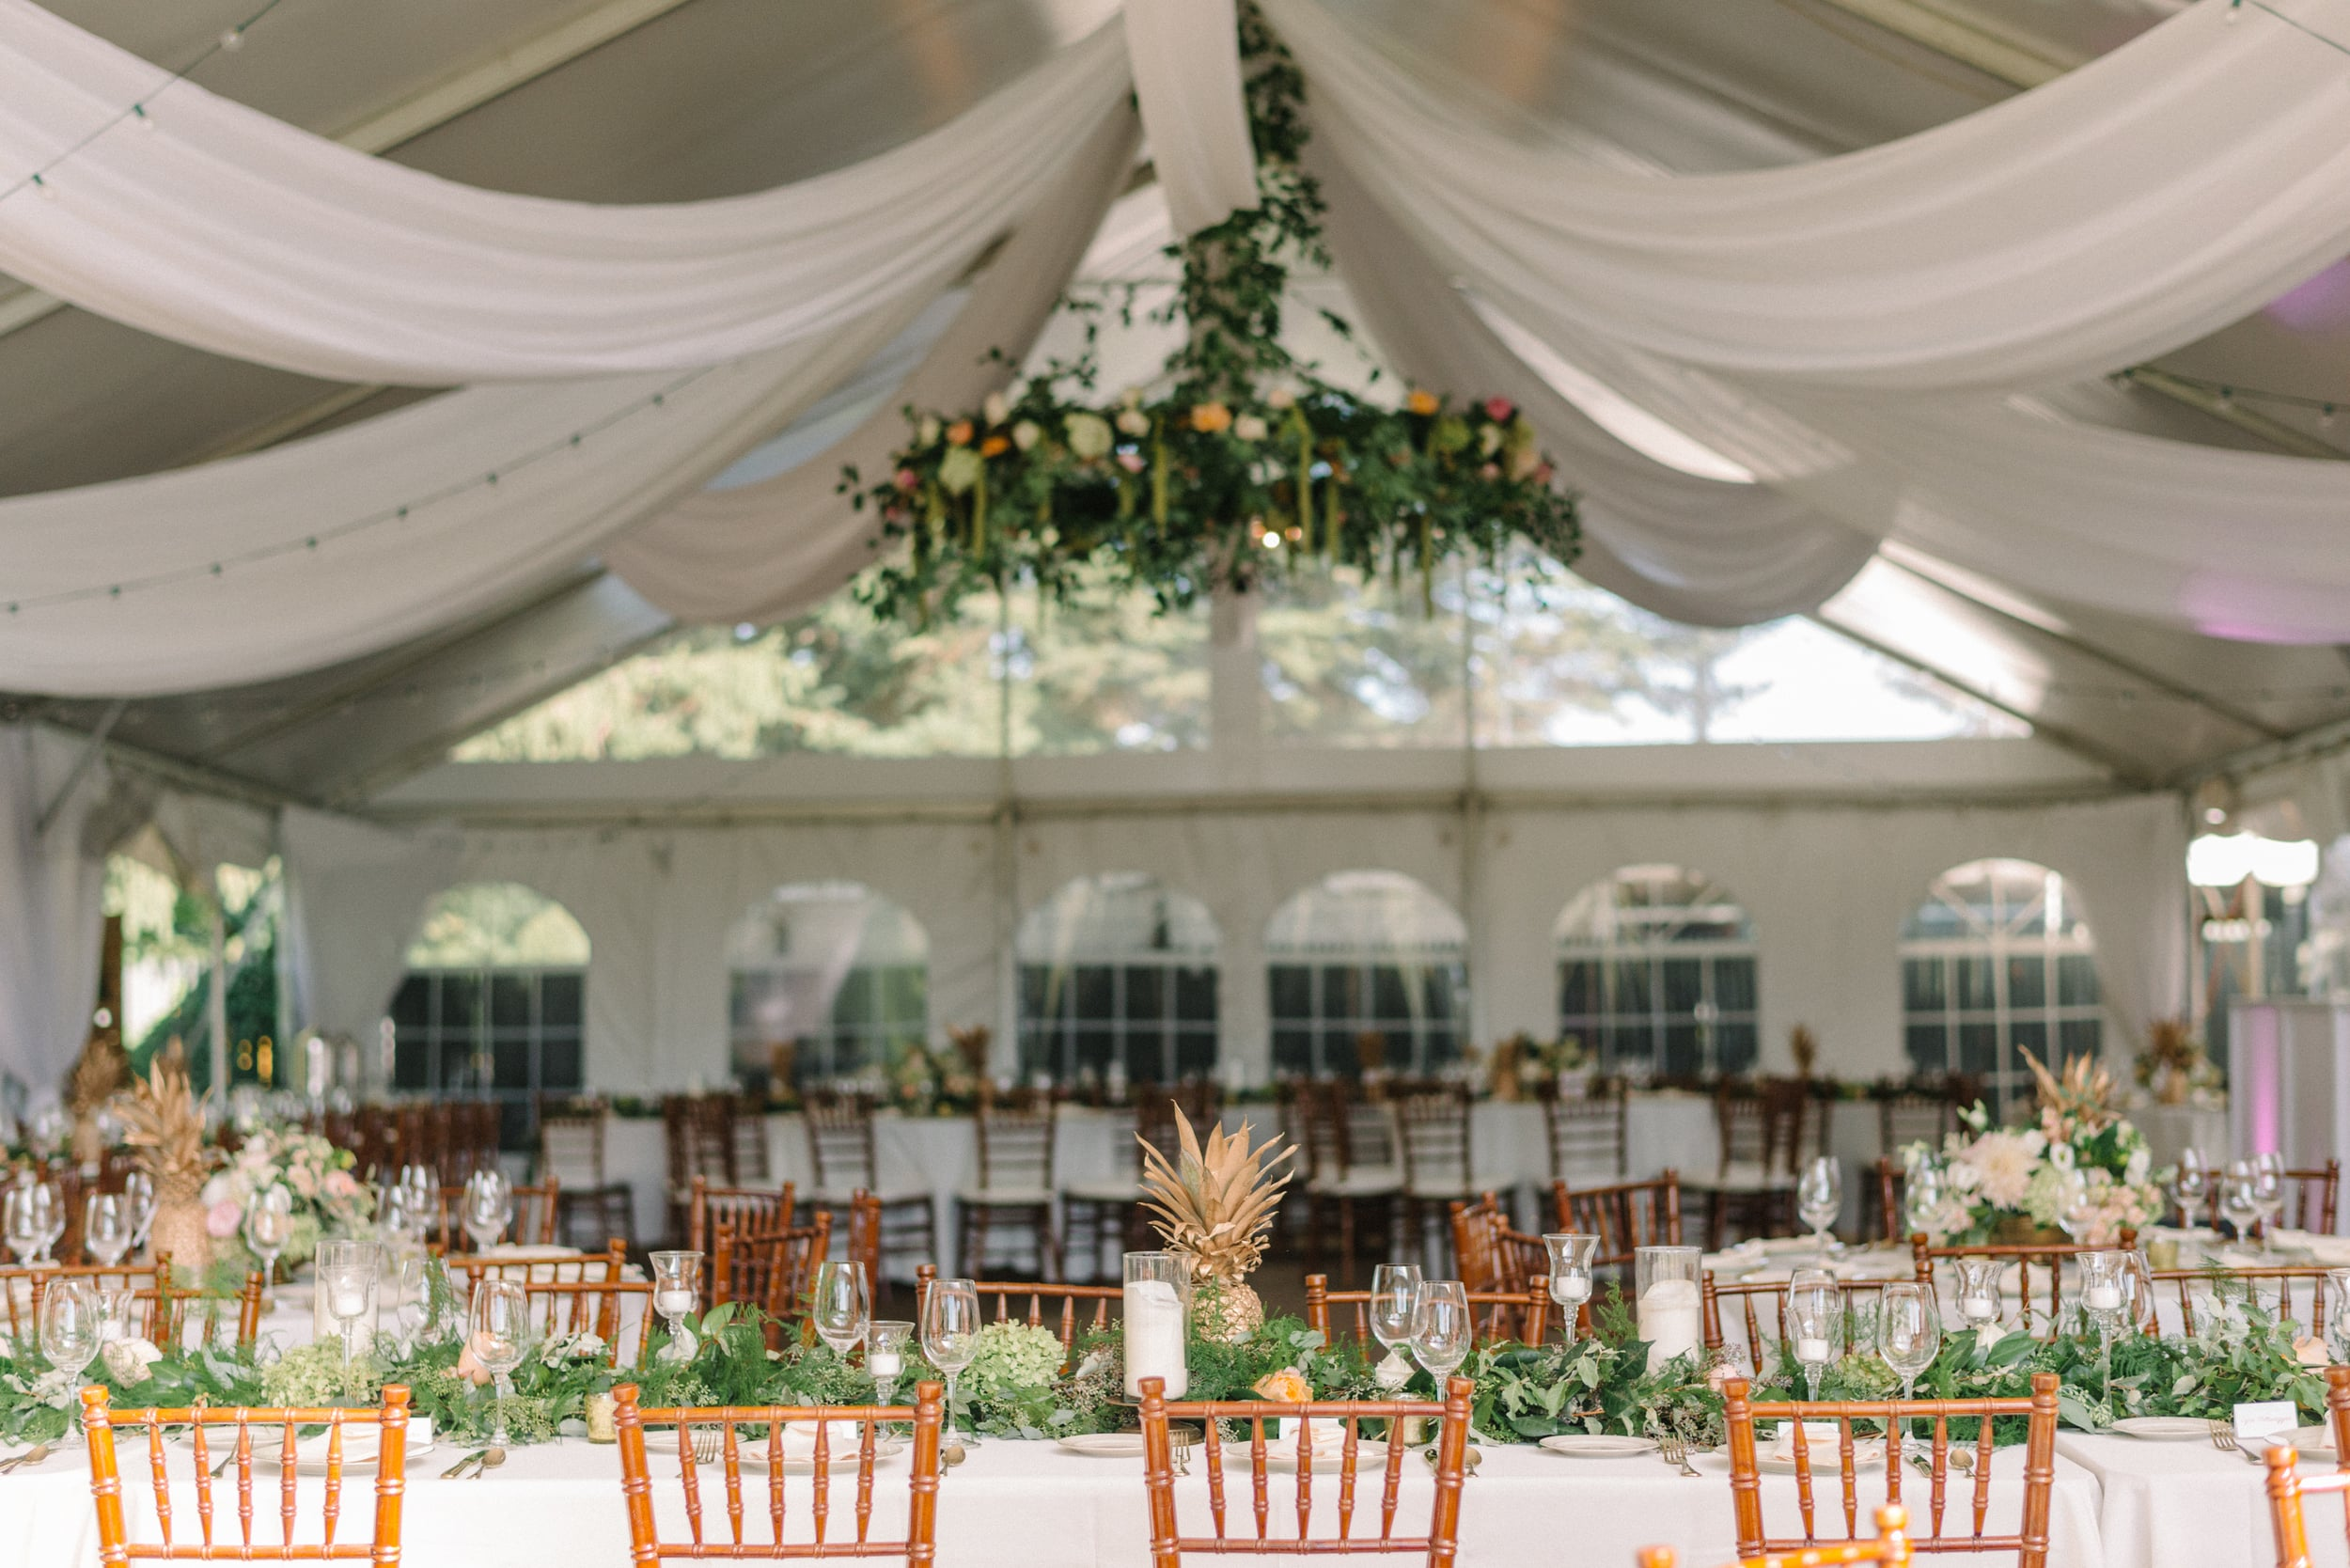 A Garden Party Florist, Inn at Fernbrook Farms, Michelle Lange Photography, Blush, Floral Chandelier, Table Decor, Garland